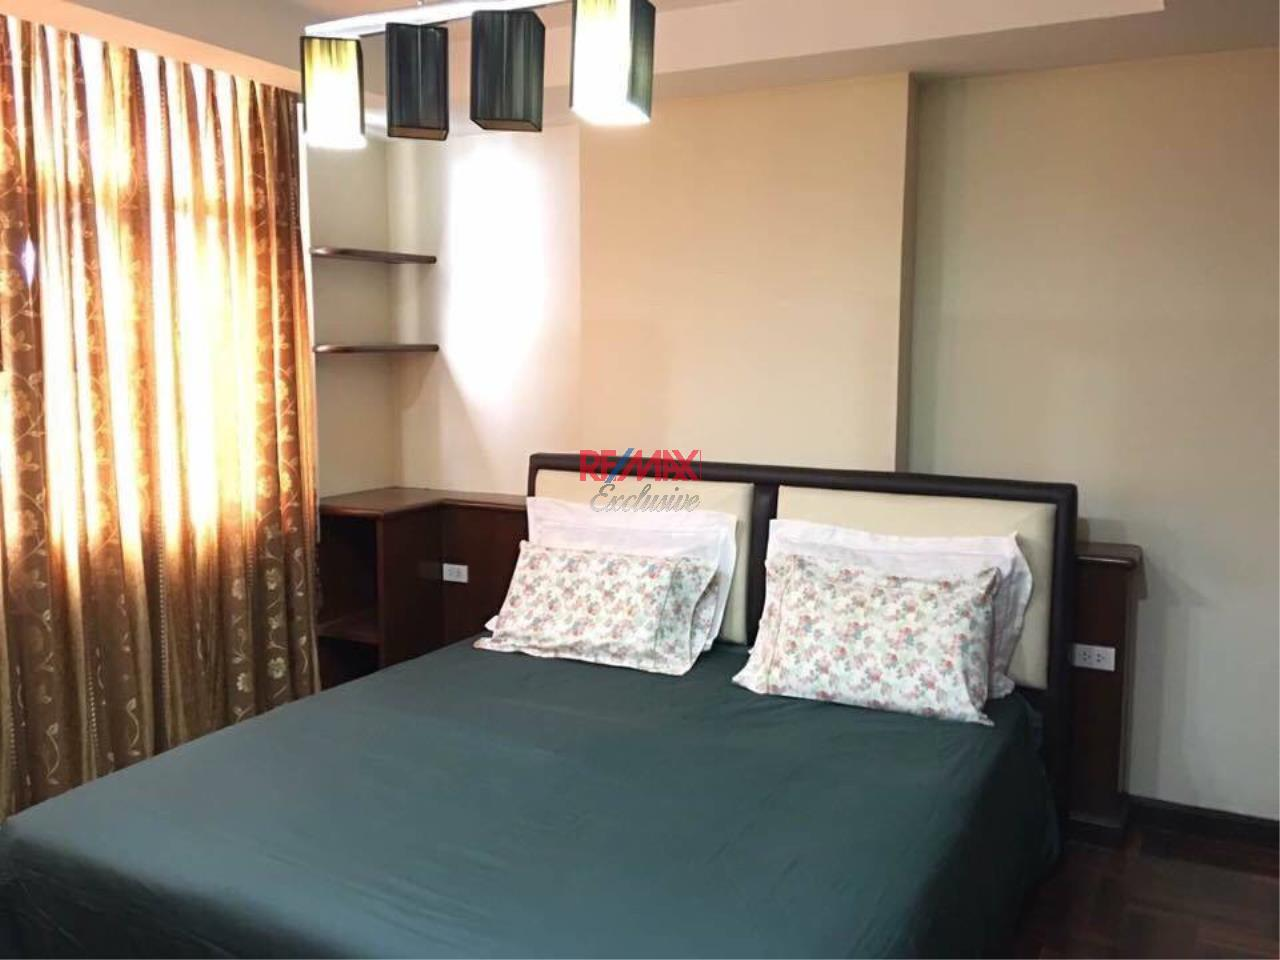 RE/MAX Exclusive Agency's Spacious 2 BR for rent near BTS Onnut, Sukhumvit 50. 4